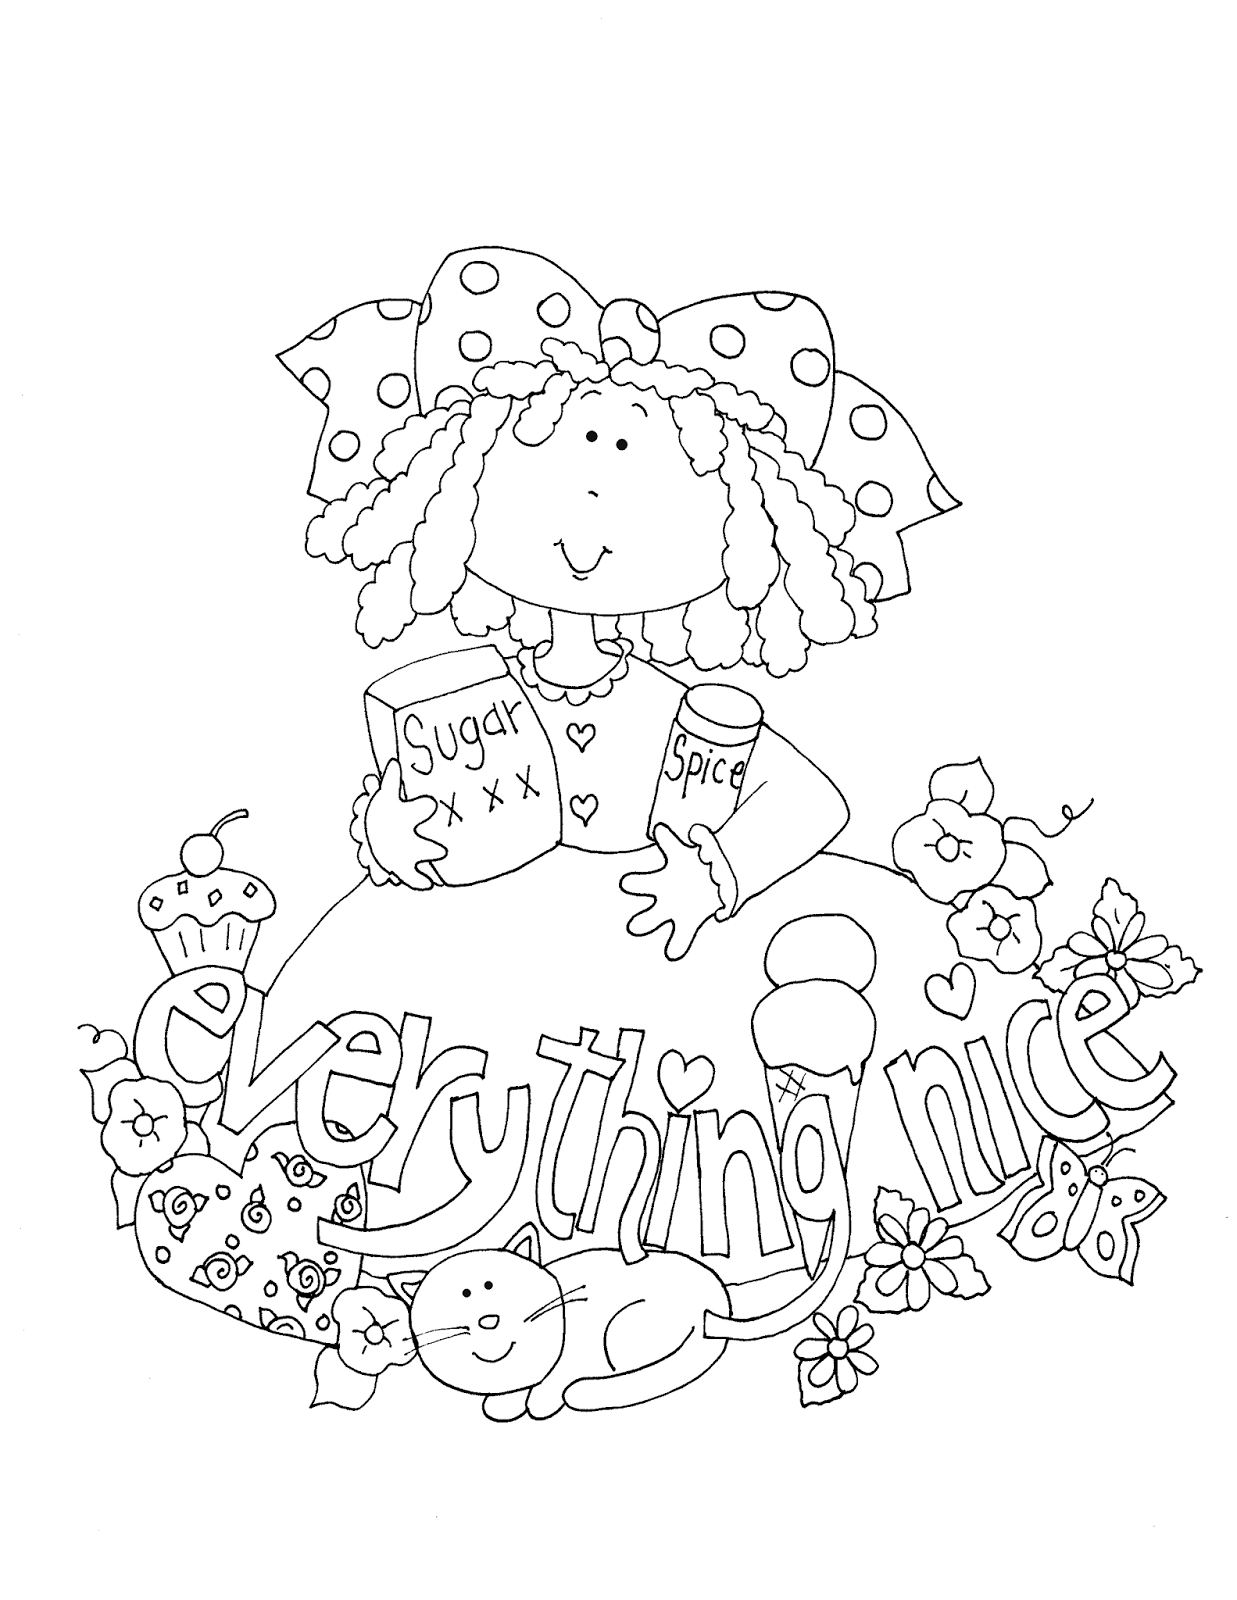 Free Dearie Dolls Digi Stamps: As requested....Sugar and